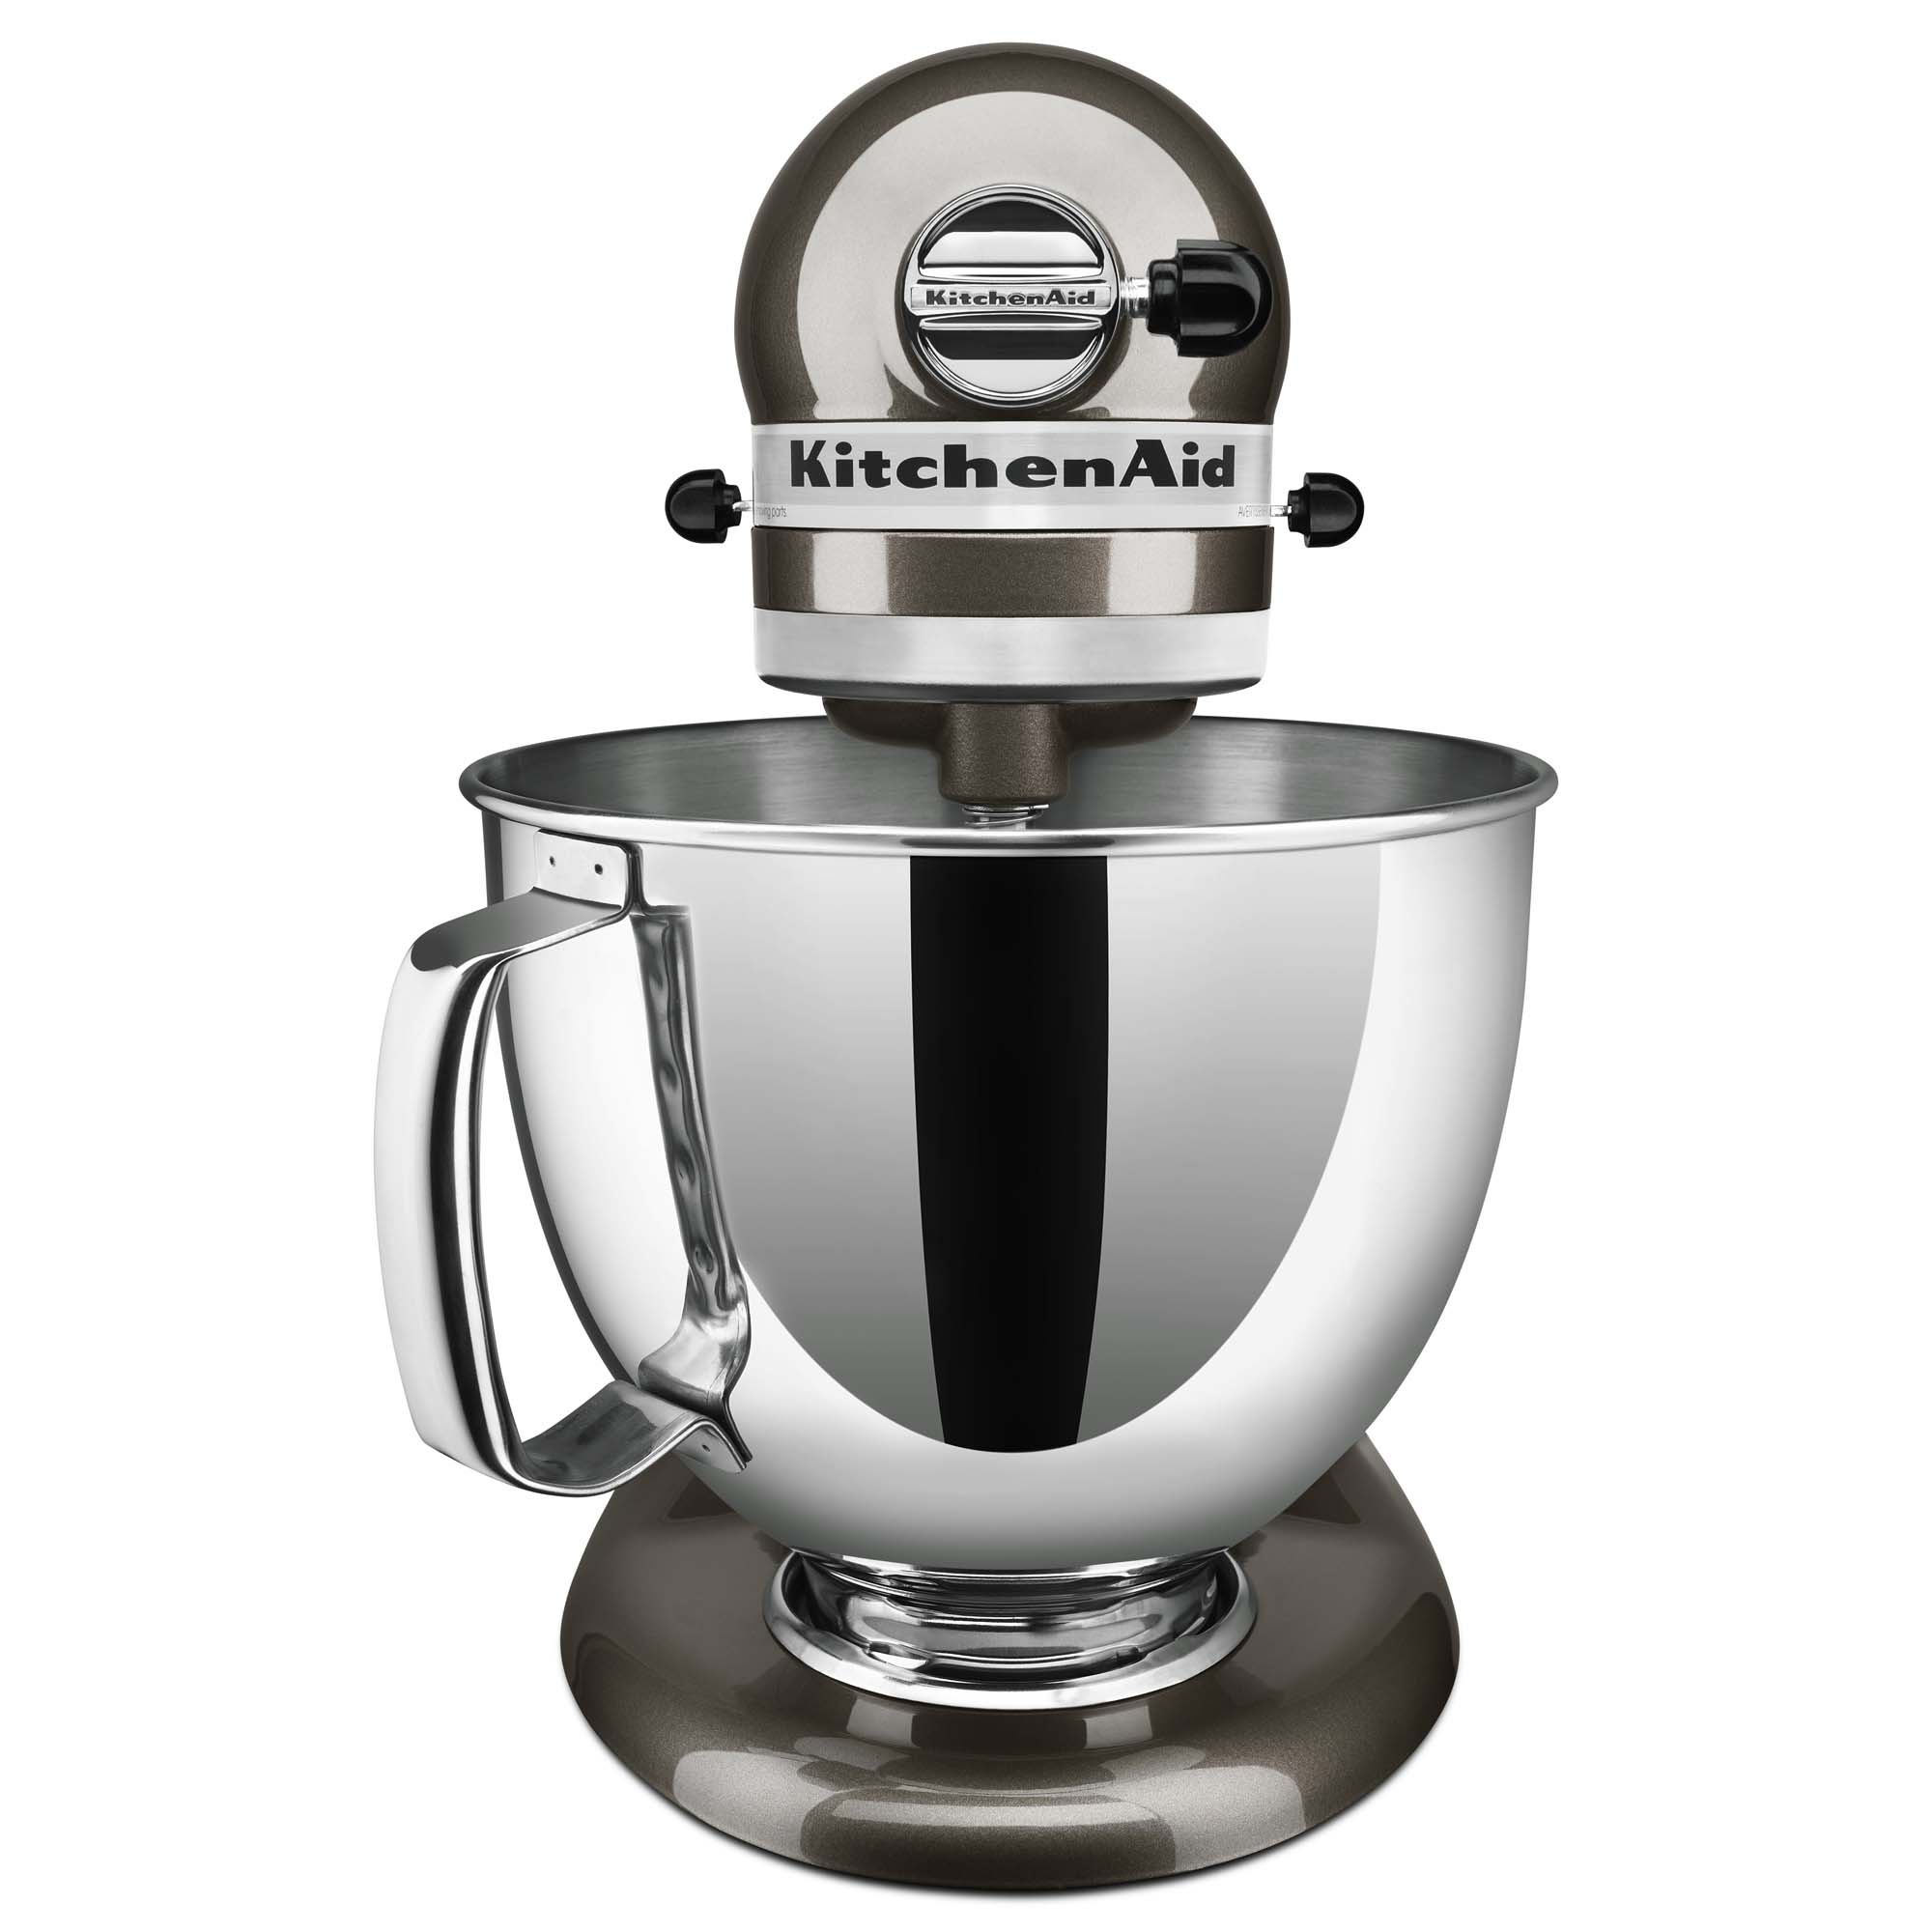 KitchenAid-Refurbished-Artisan-Series-5-Quart-Tilt-Head-Stand-Mixer-RRK150 thumbnail 87